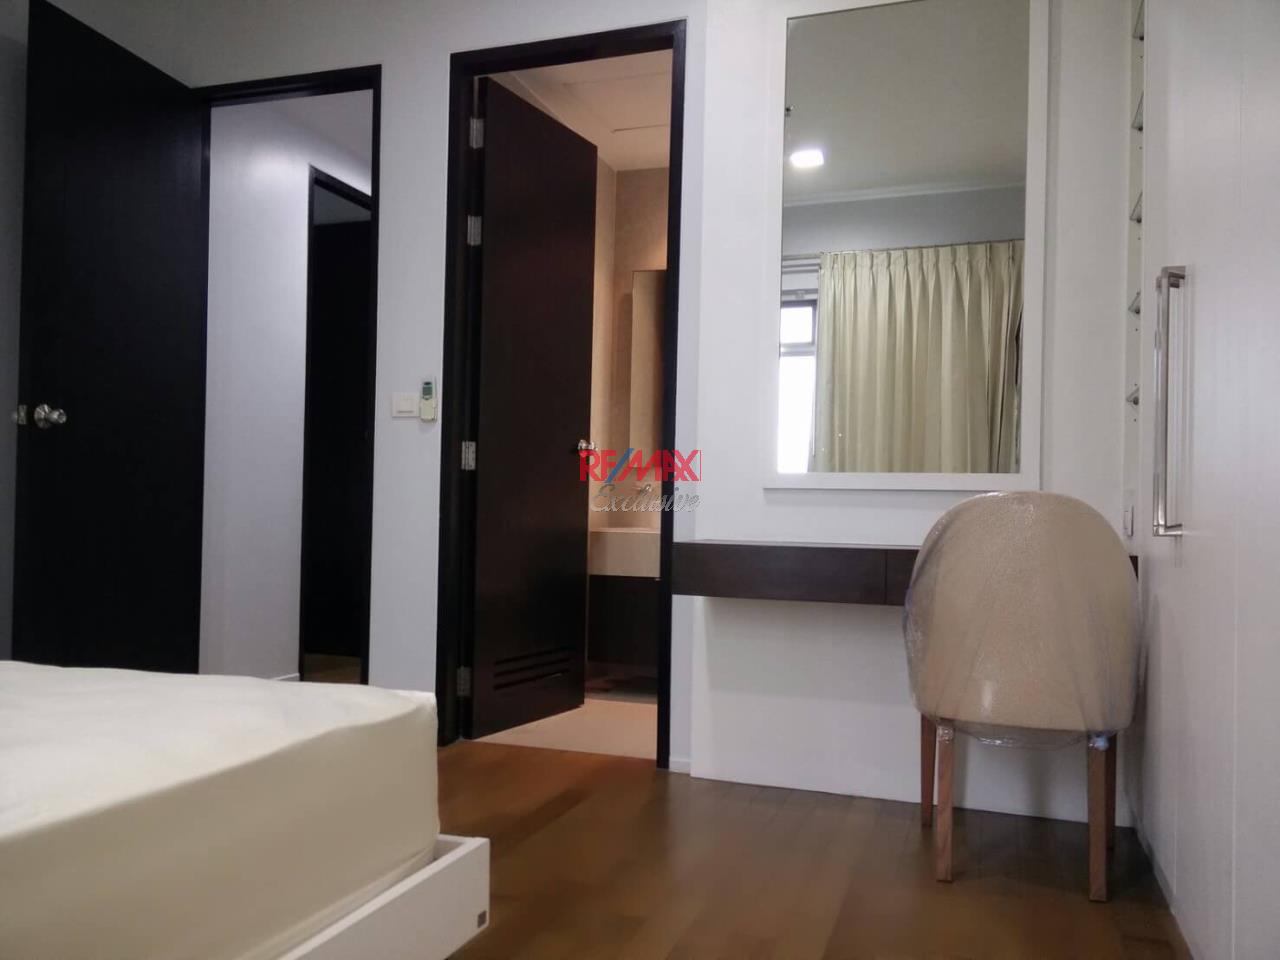 RE/MAX Exclusive Agency's The Madison Condo 2 Bedrooms 139 Sqm., For Sale With Tenant 24,000 000 THB!!  7